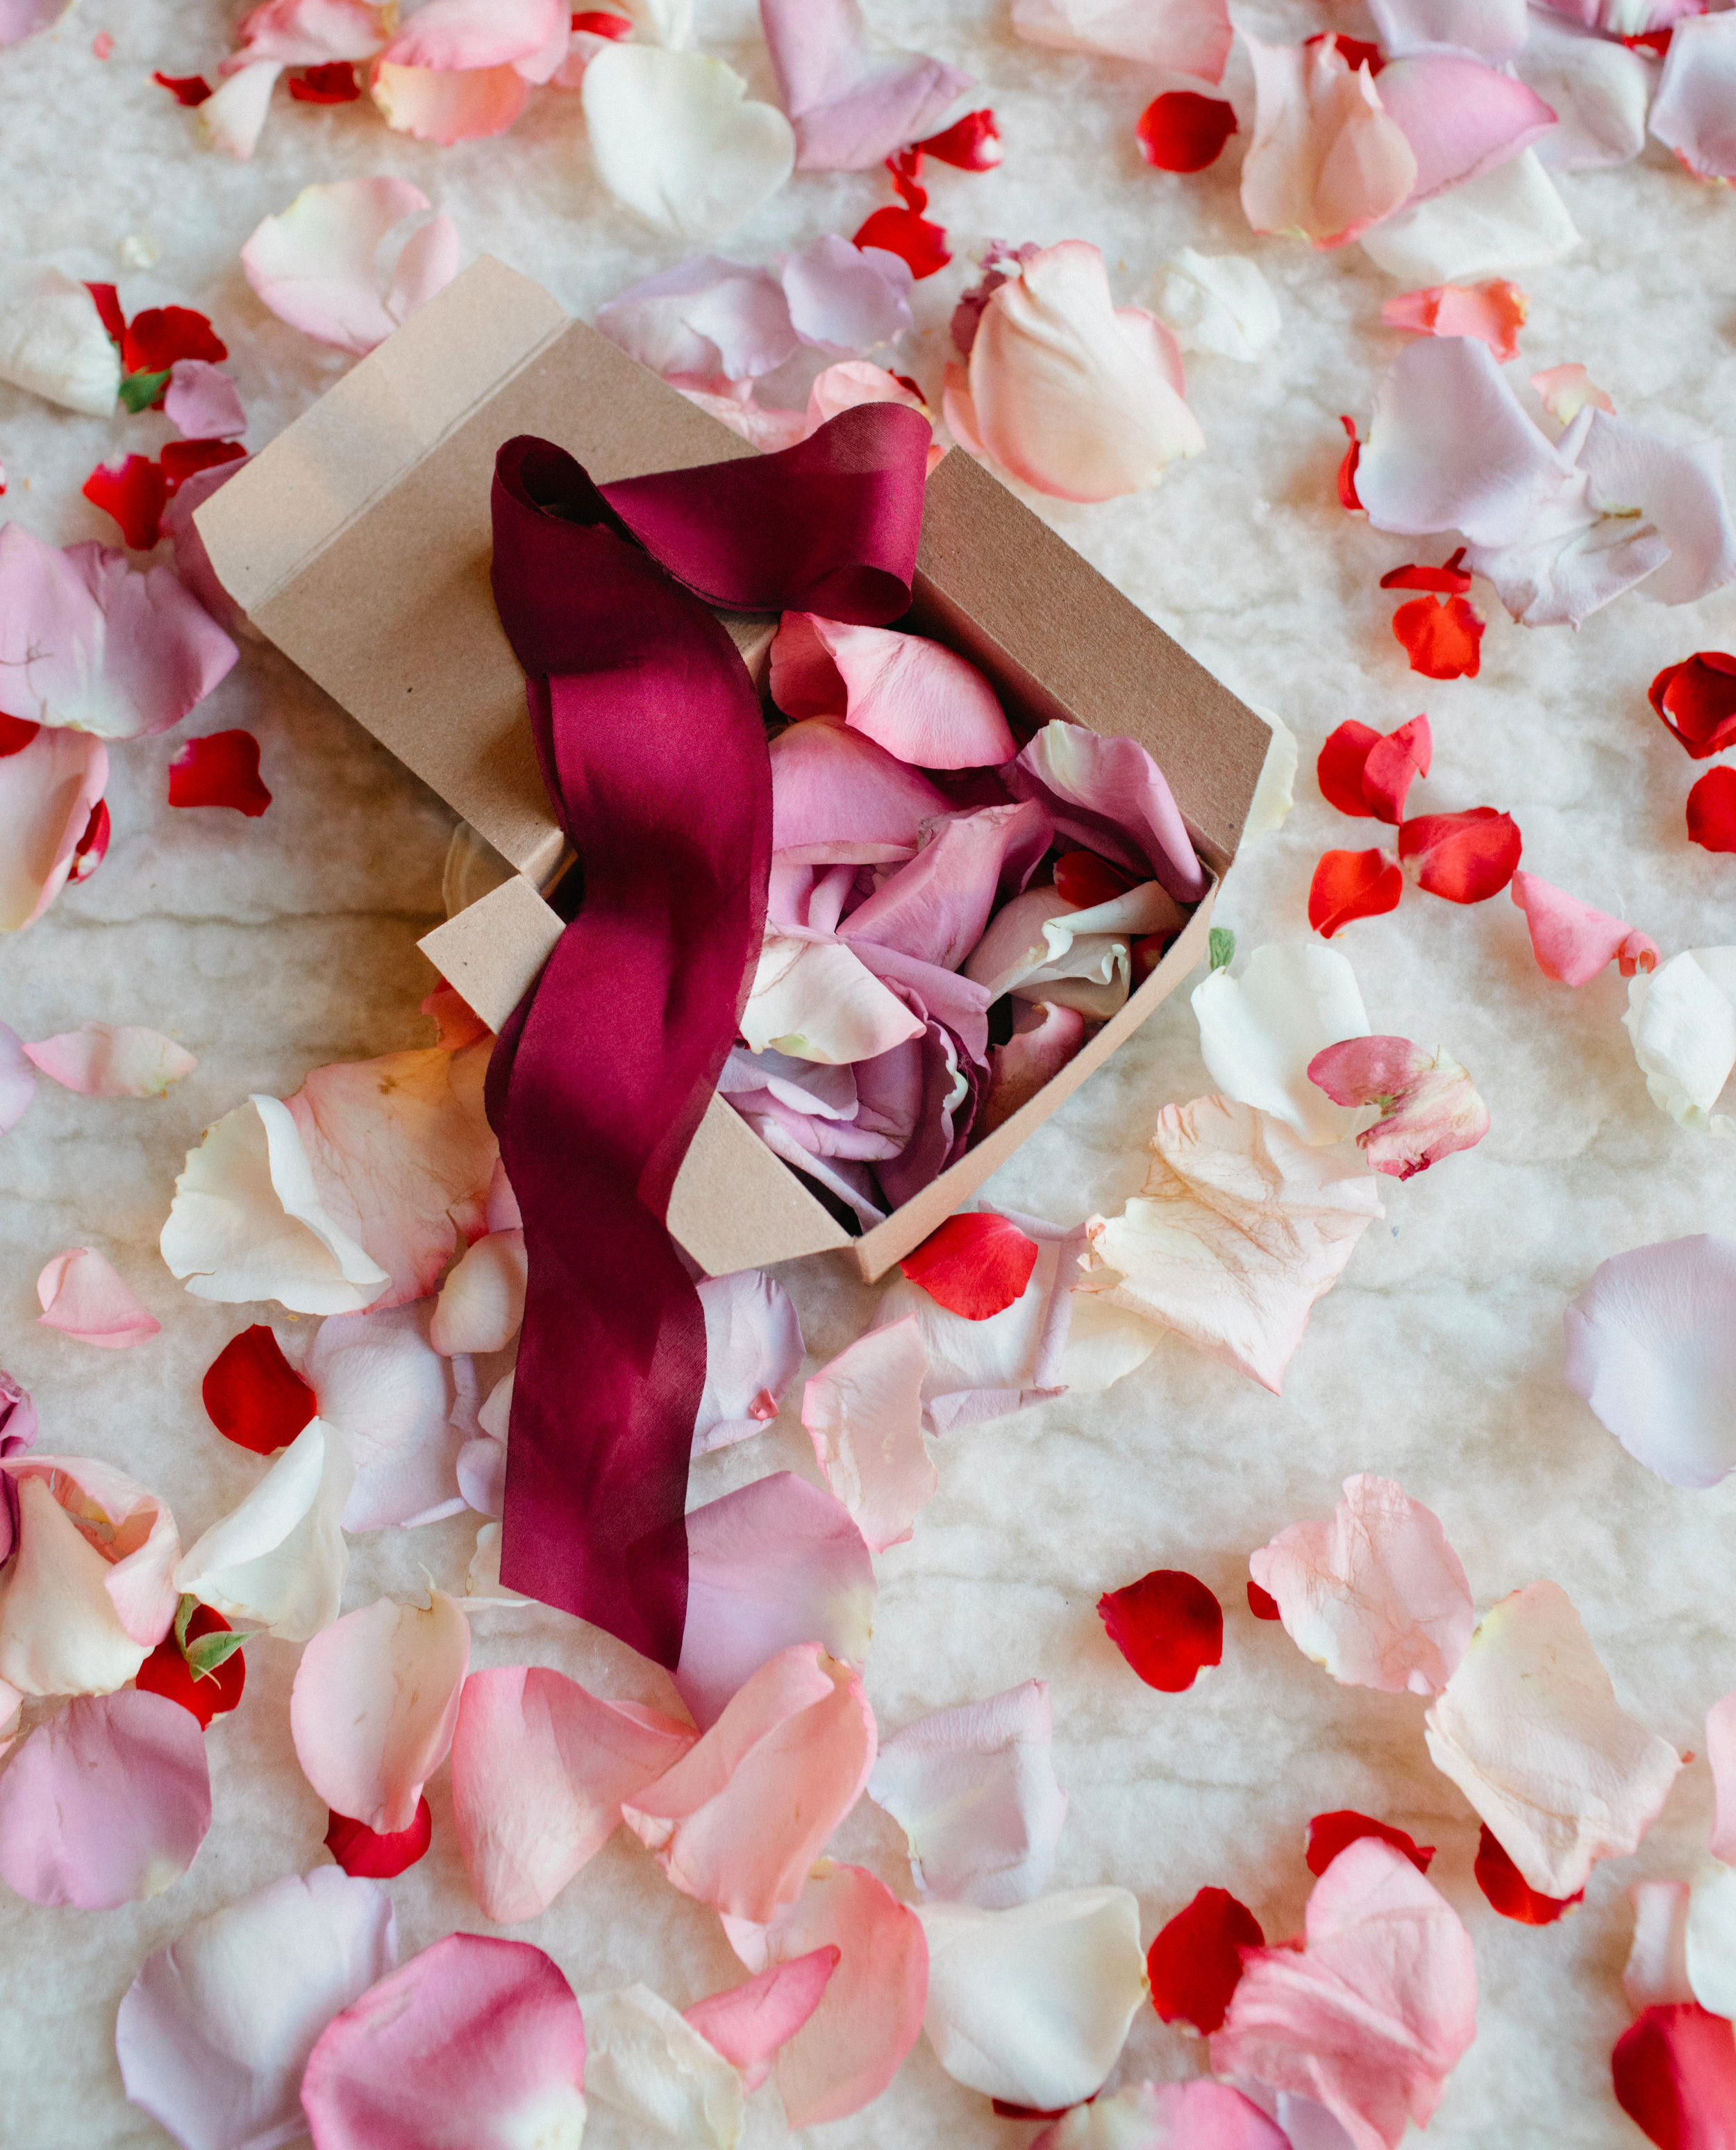 Rose Petals - Add a little extra romance with rose petals!